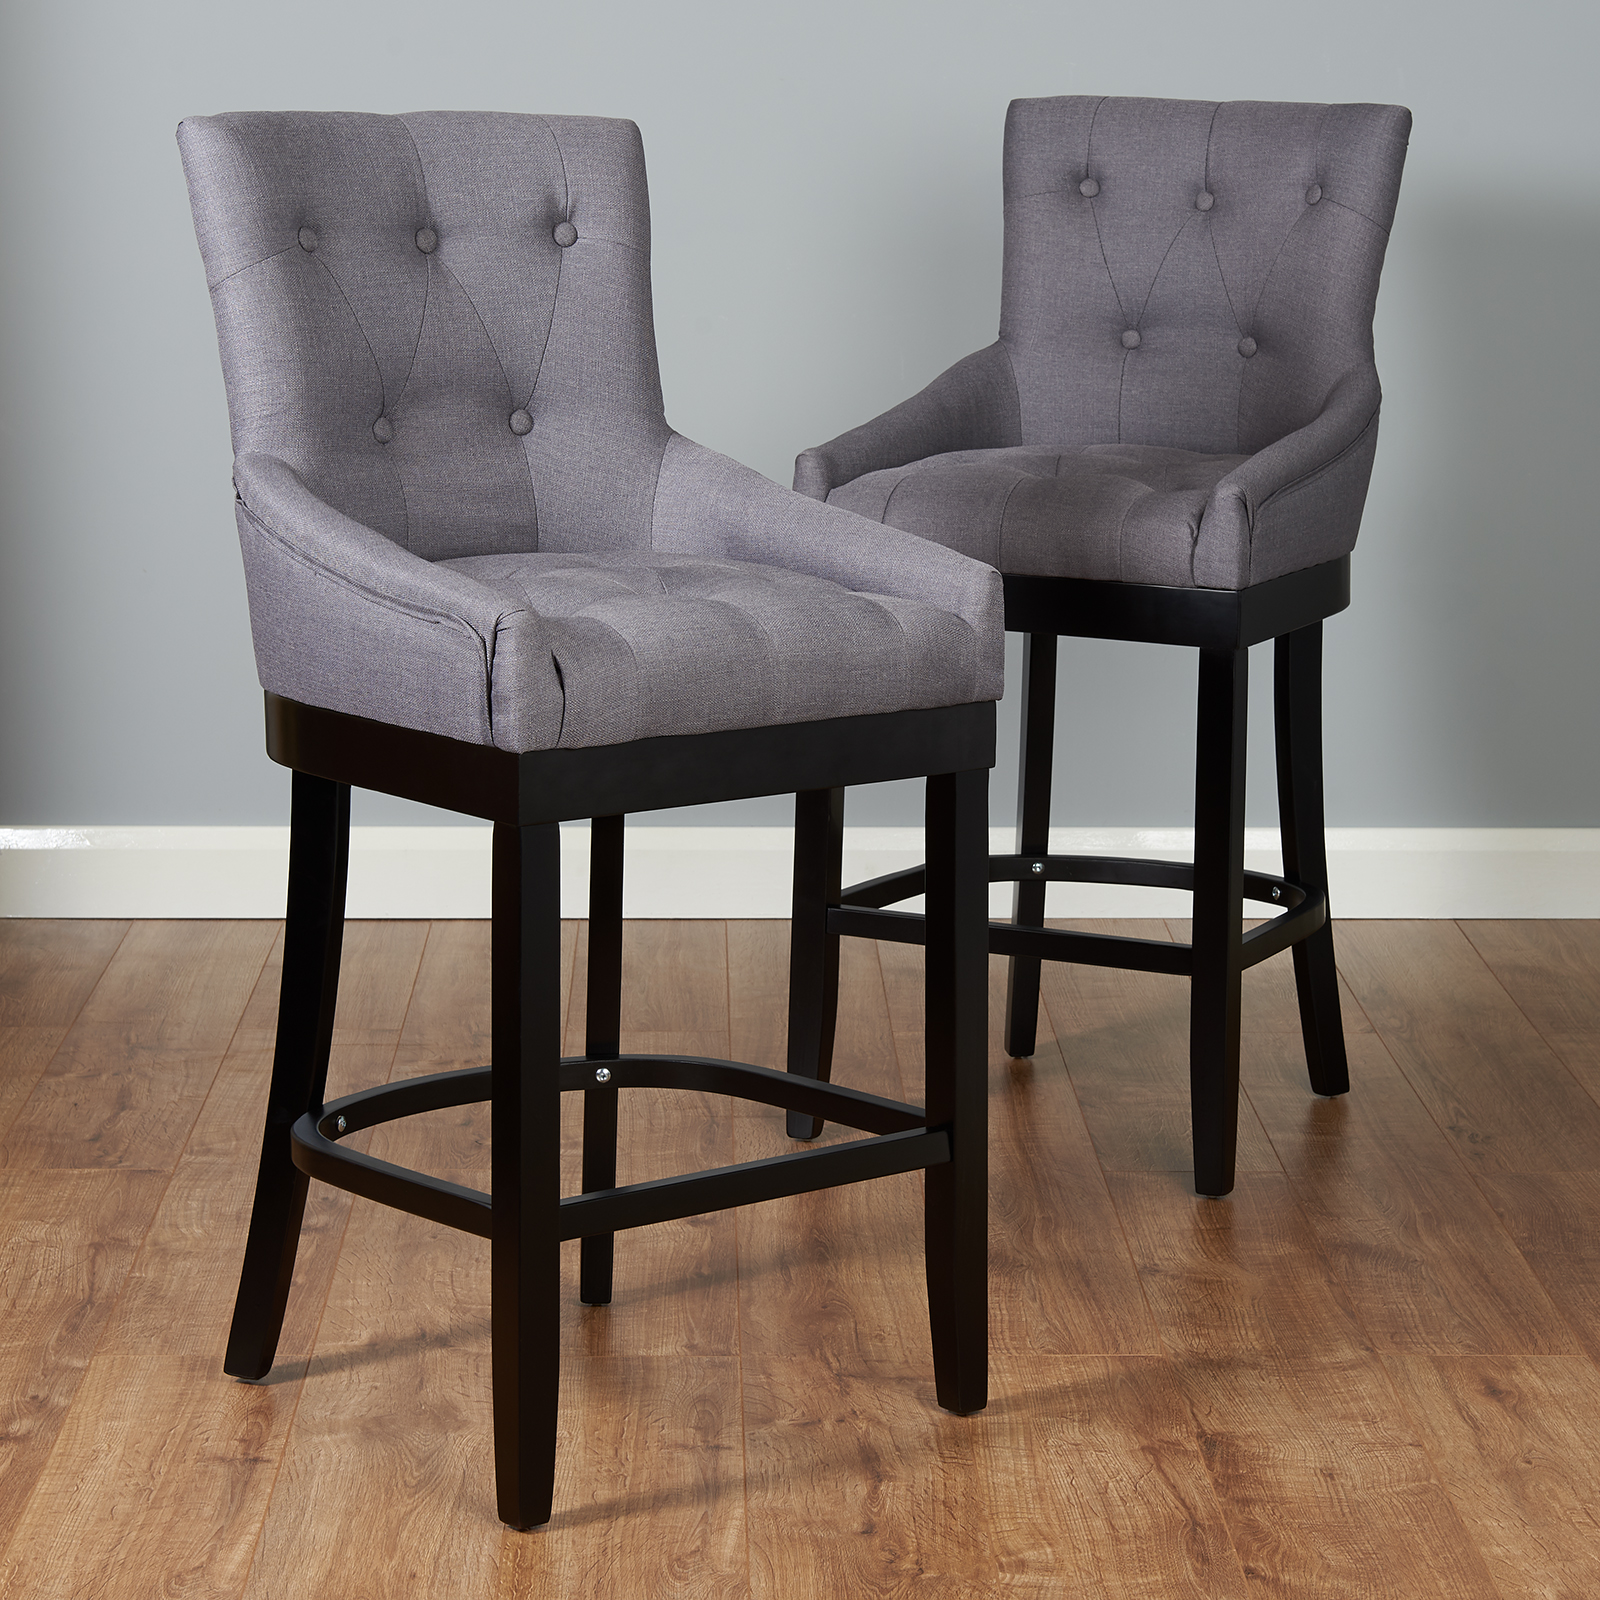 Grey Kitchen Bar Stools: Pair Of Dark Grey Bar Stools Kitchen Breakfast Stool Seat